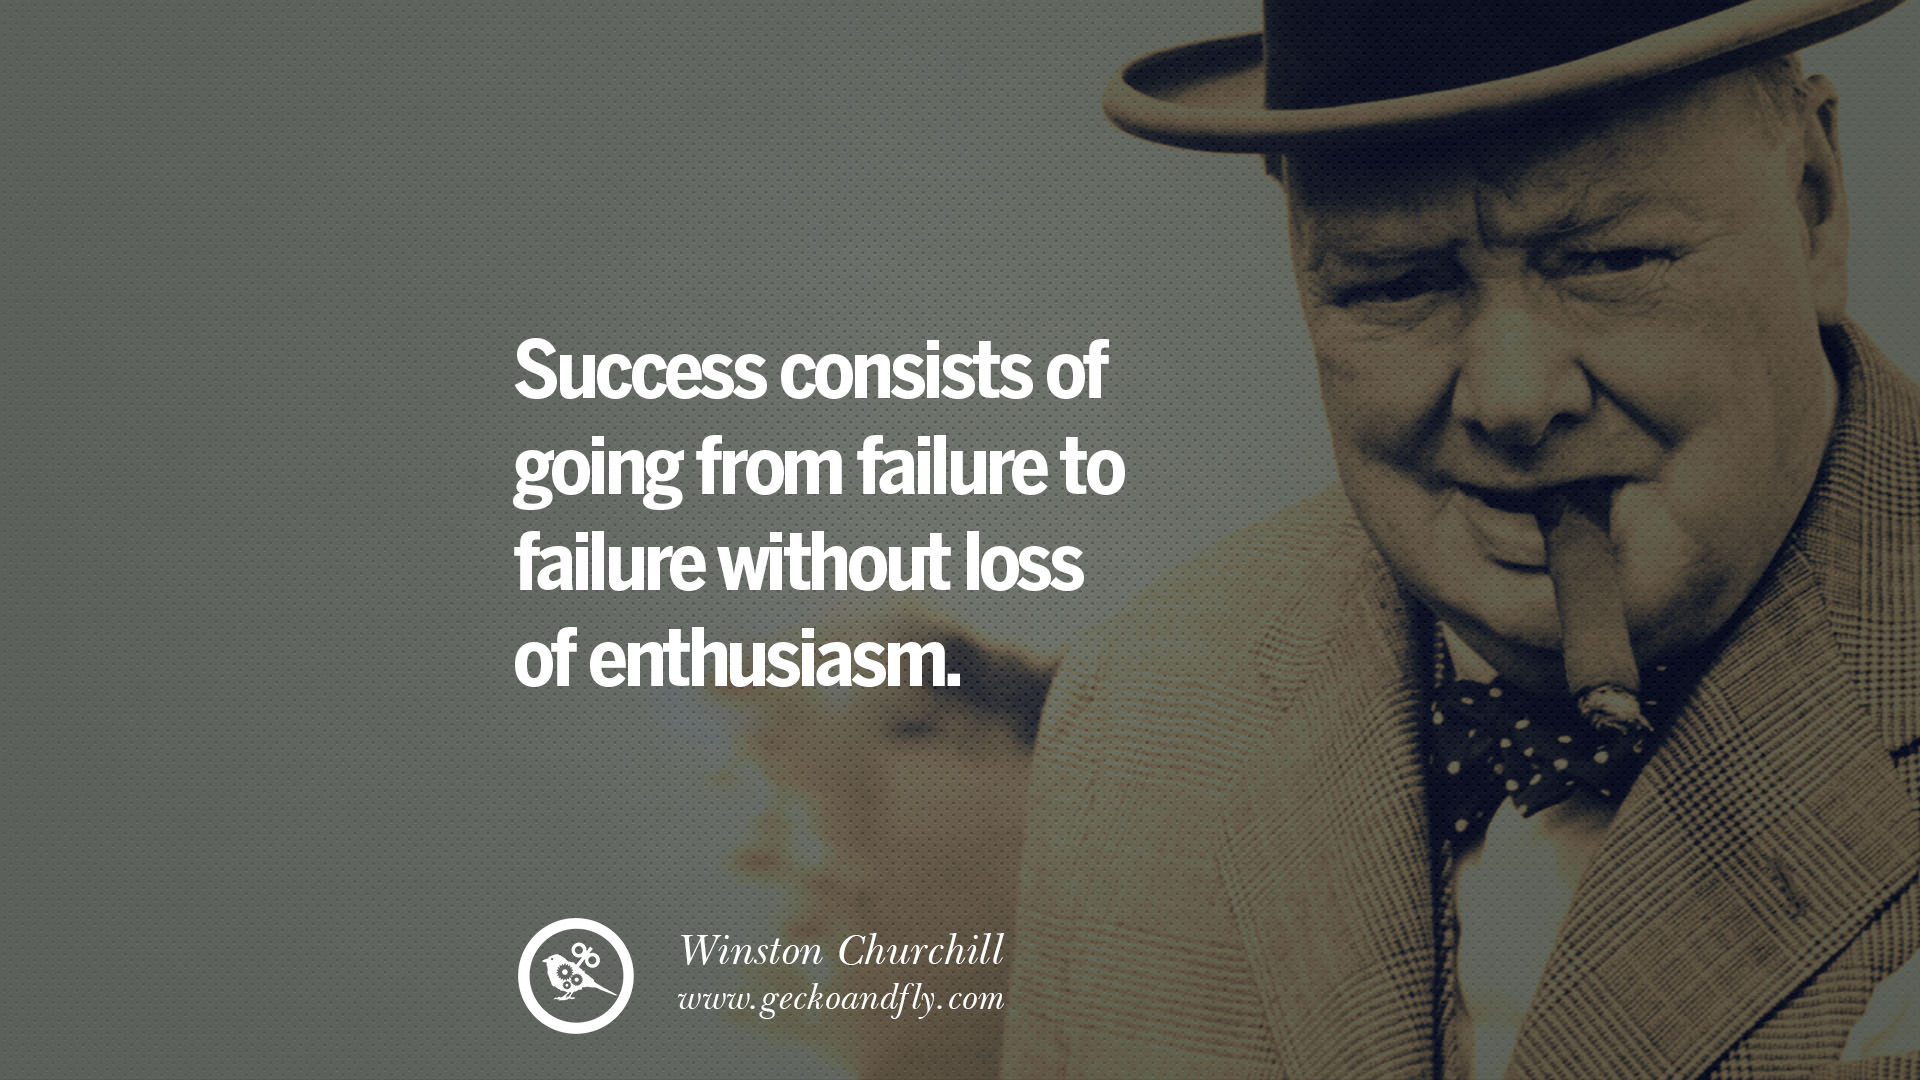 11 Sir Winston Churchill Quotes and Speeches on Success, Courage